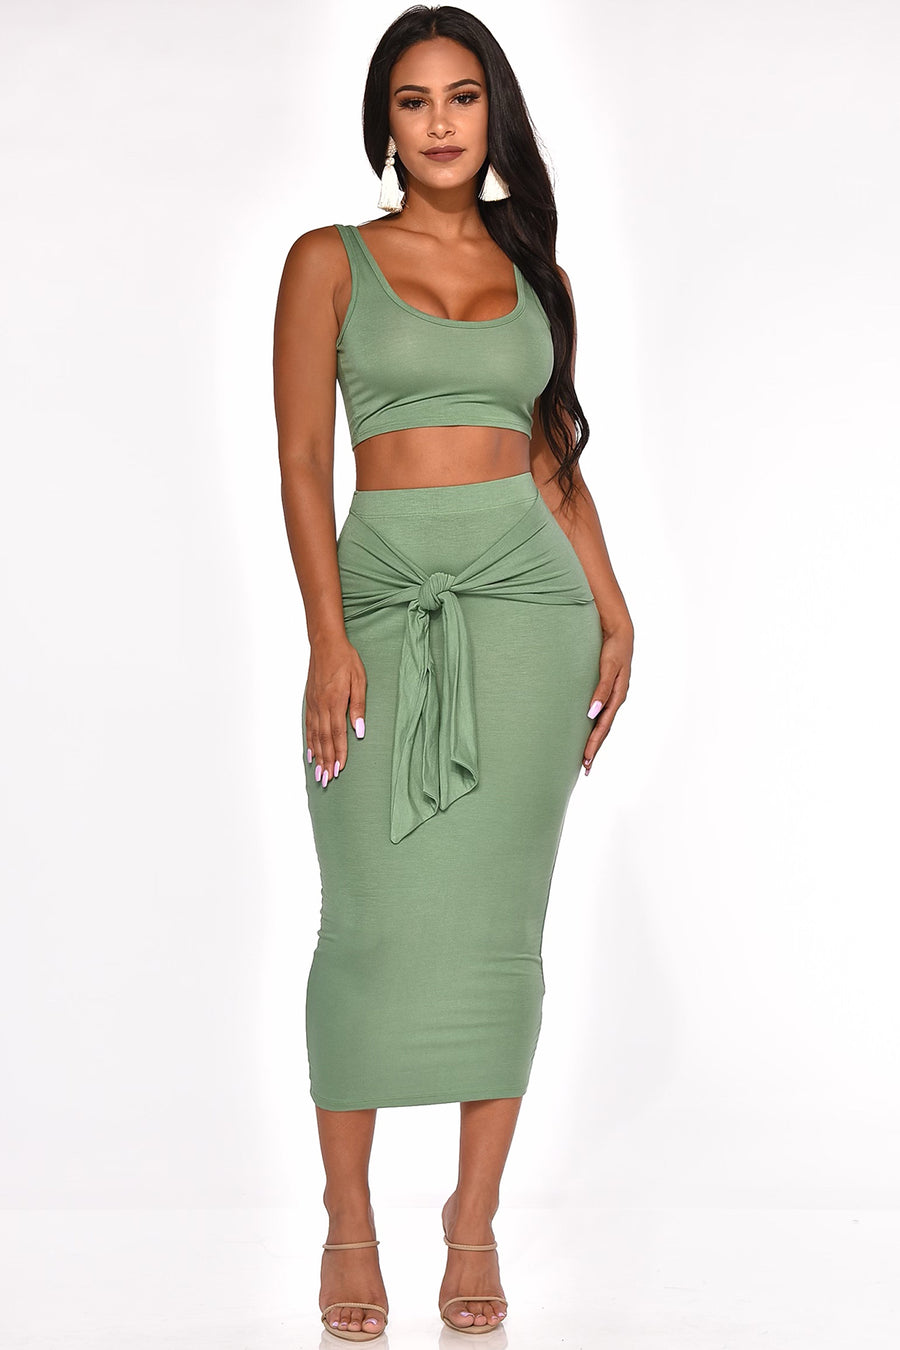 VALLEY GIRL SKIRT SET